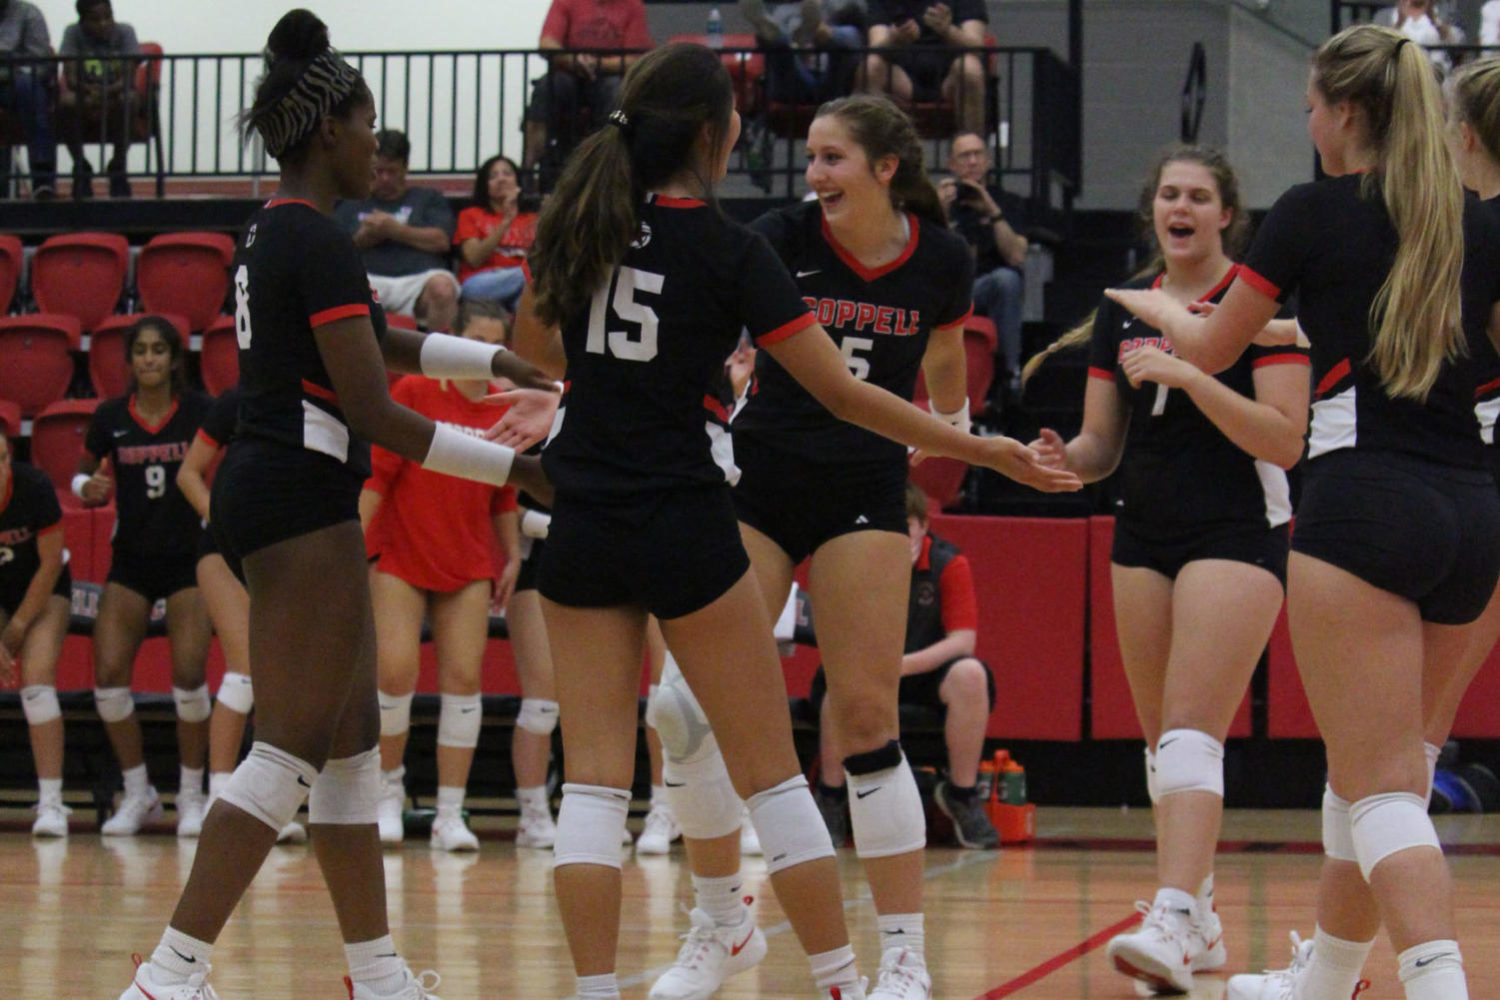 Coppell sophomore middle blocker Madison Gilliland celebrates after a game winning point tonight at the CHS arena on Tuesday. The Cowgirls defeated Keller Central, 25-16, 25-13, 25-17. Photo by Sujeong Oh.